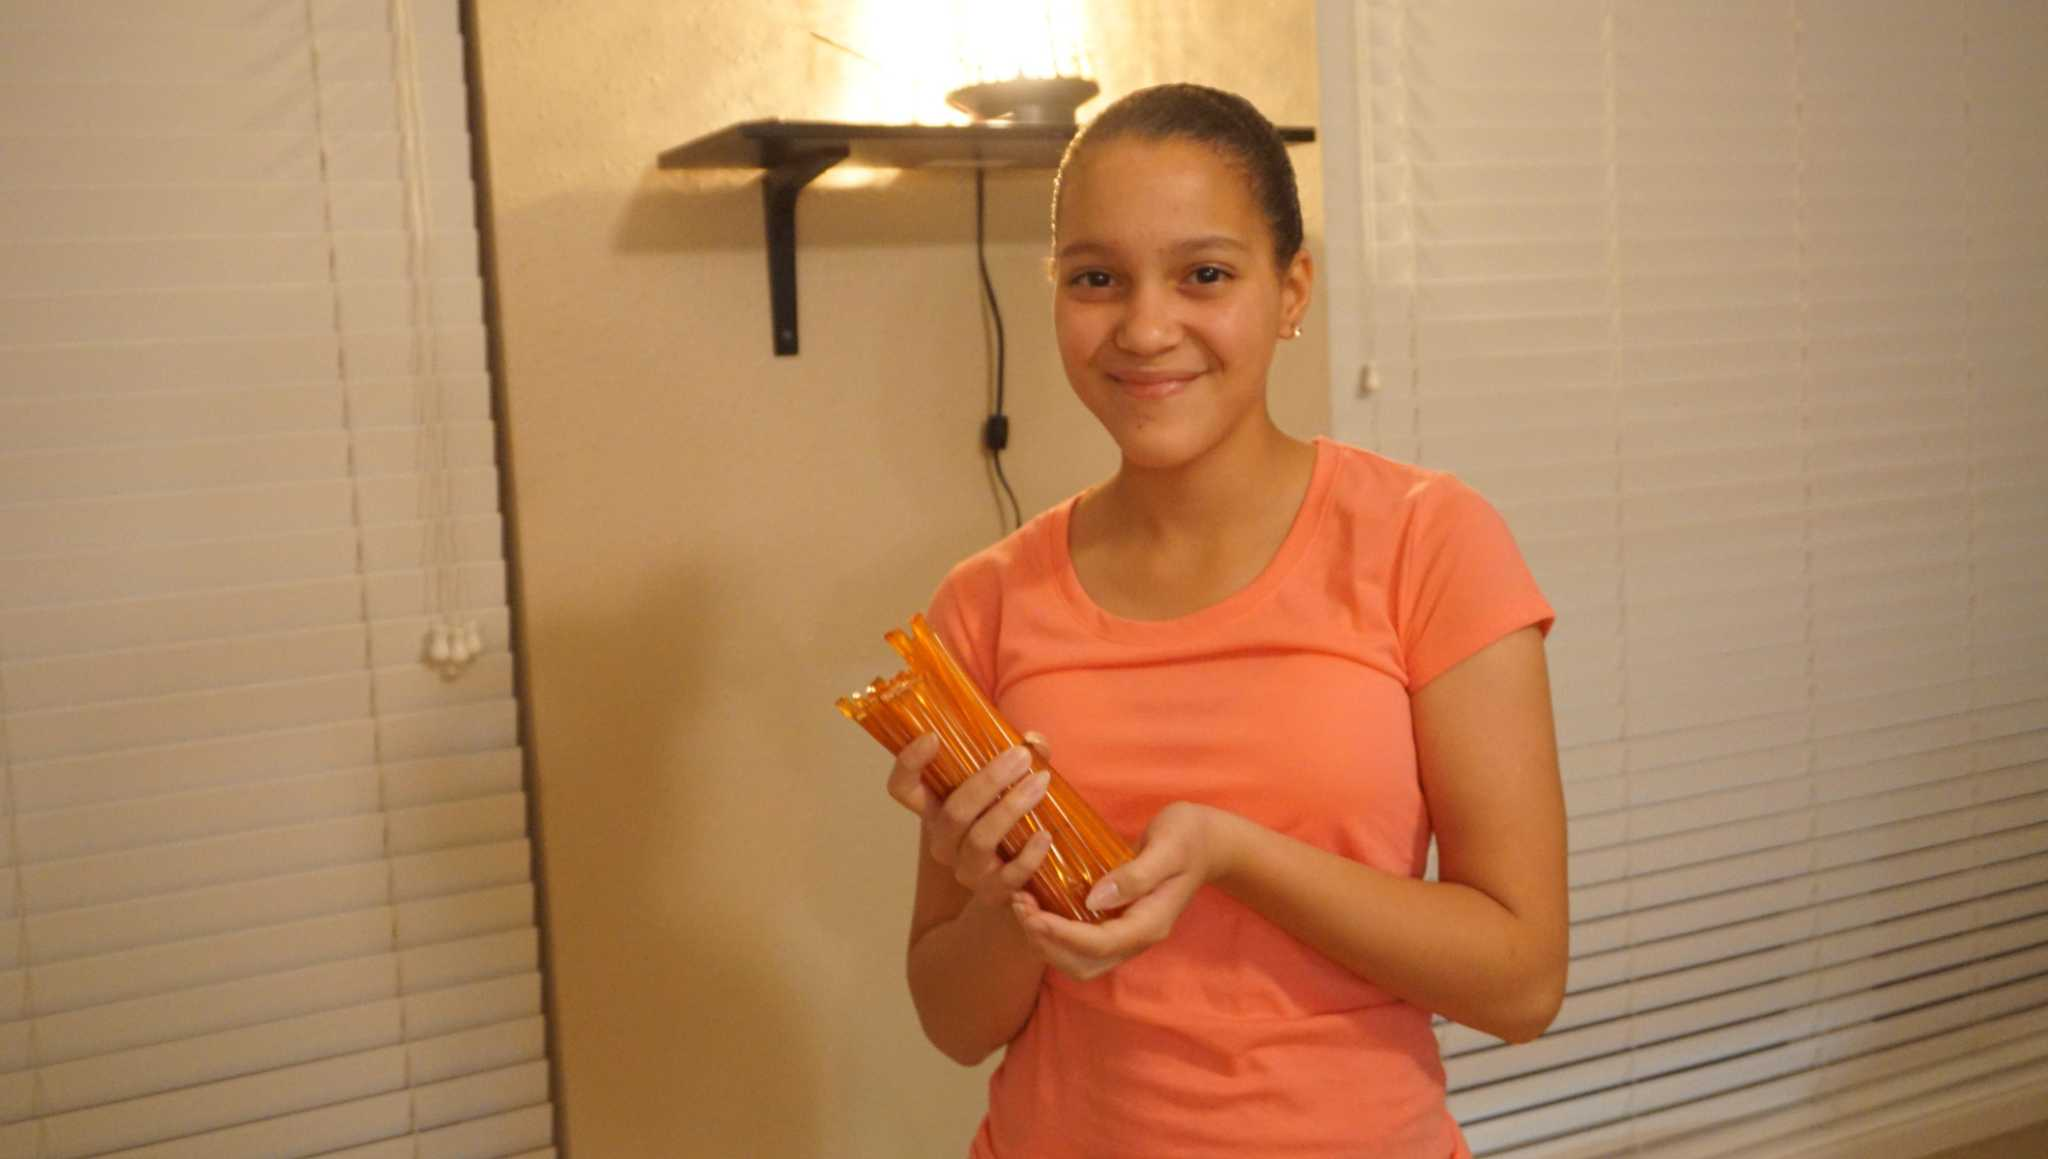 11-year-old adopts honey stick business at Humble Market